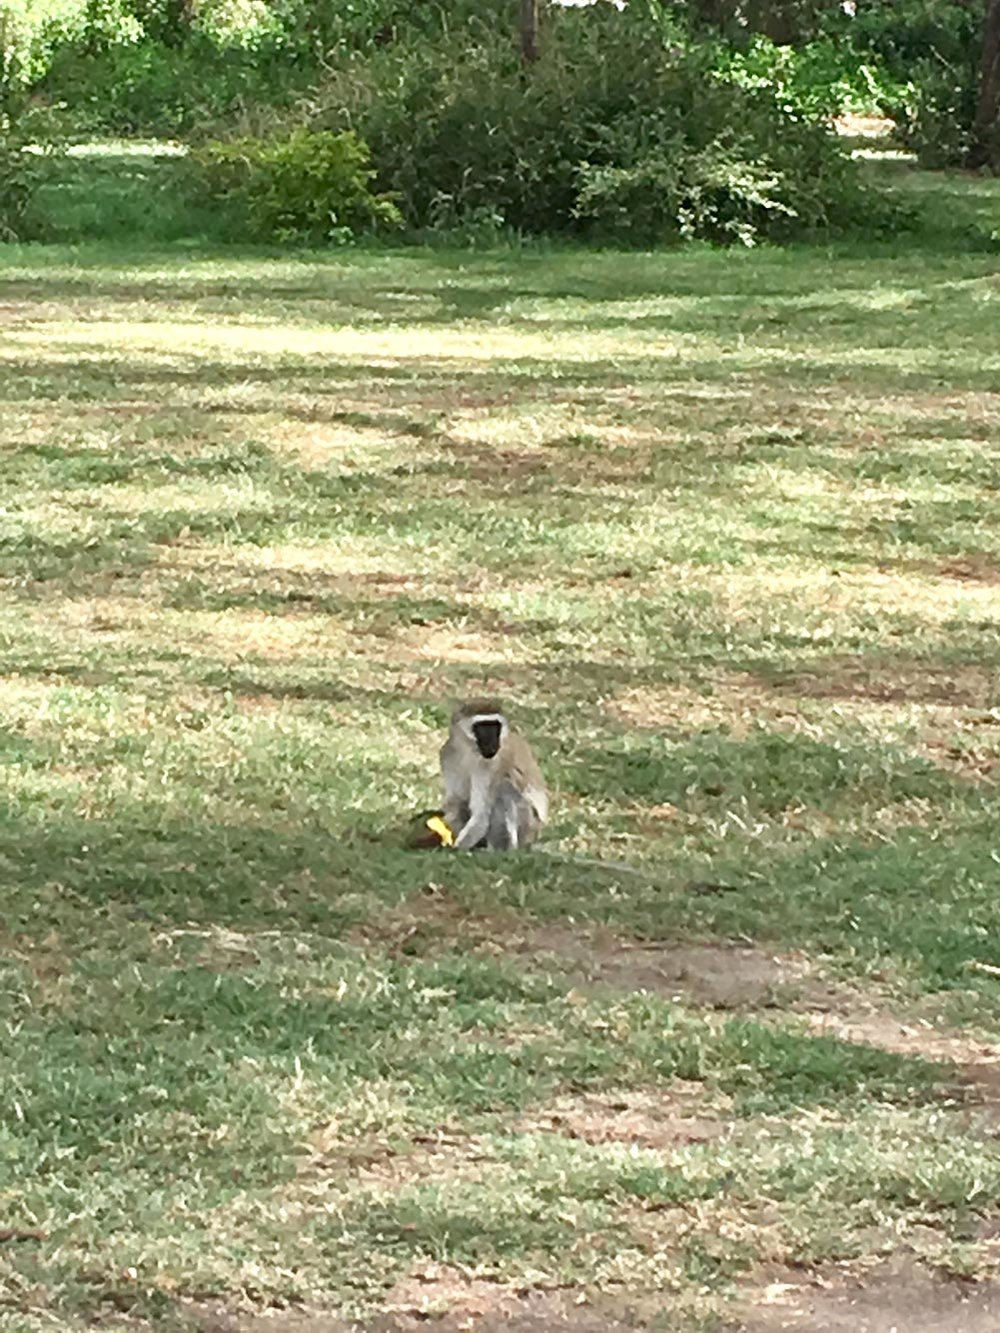 If you do find yourself at Camp Carnelly's, watch out for the vervet monkeys, they will literally steal food off your table. They stole our mango and bananas! What rookies for leaving them lying around.